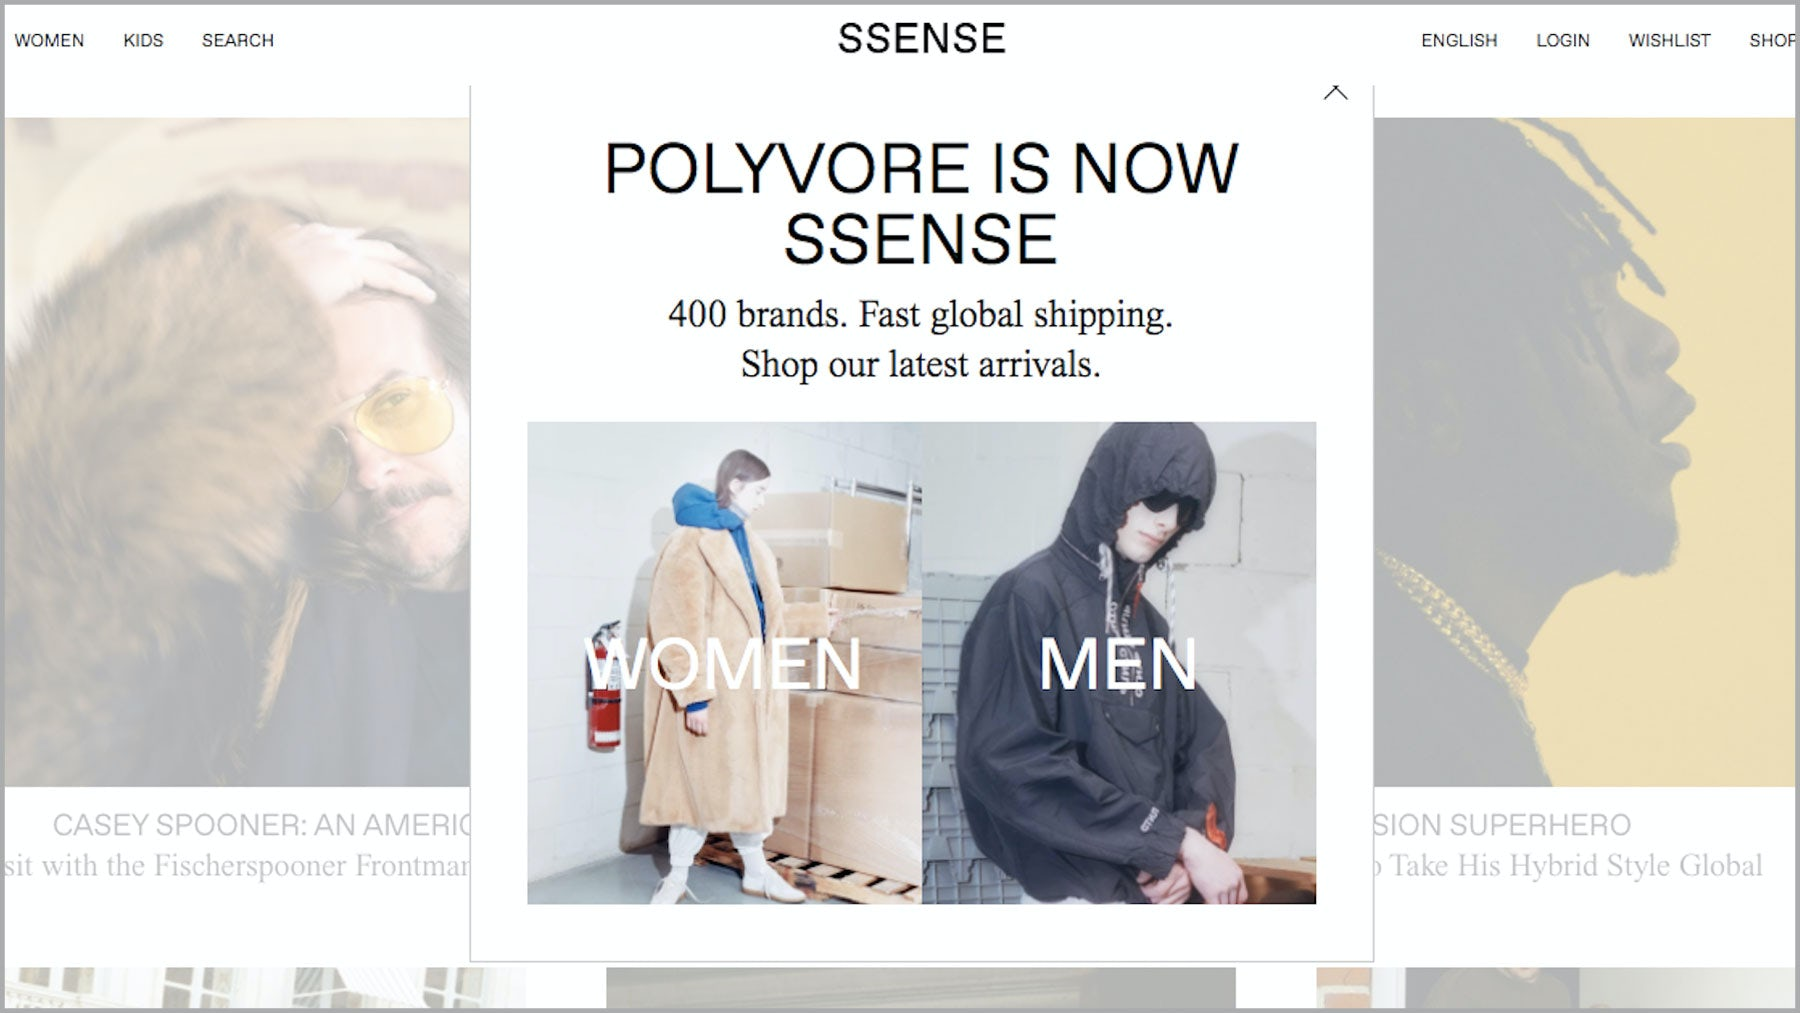 Visitors to Polyvore are taken to a version of the Ssense homepage | Source: Polyvore.com